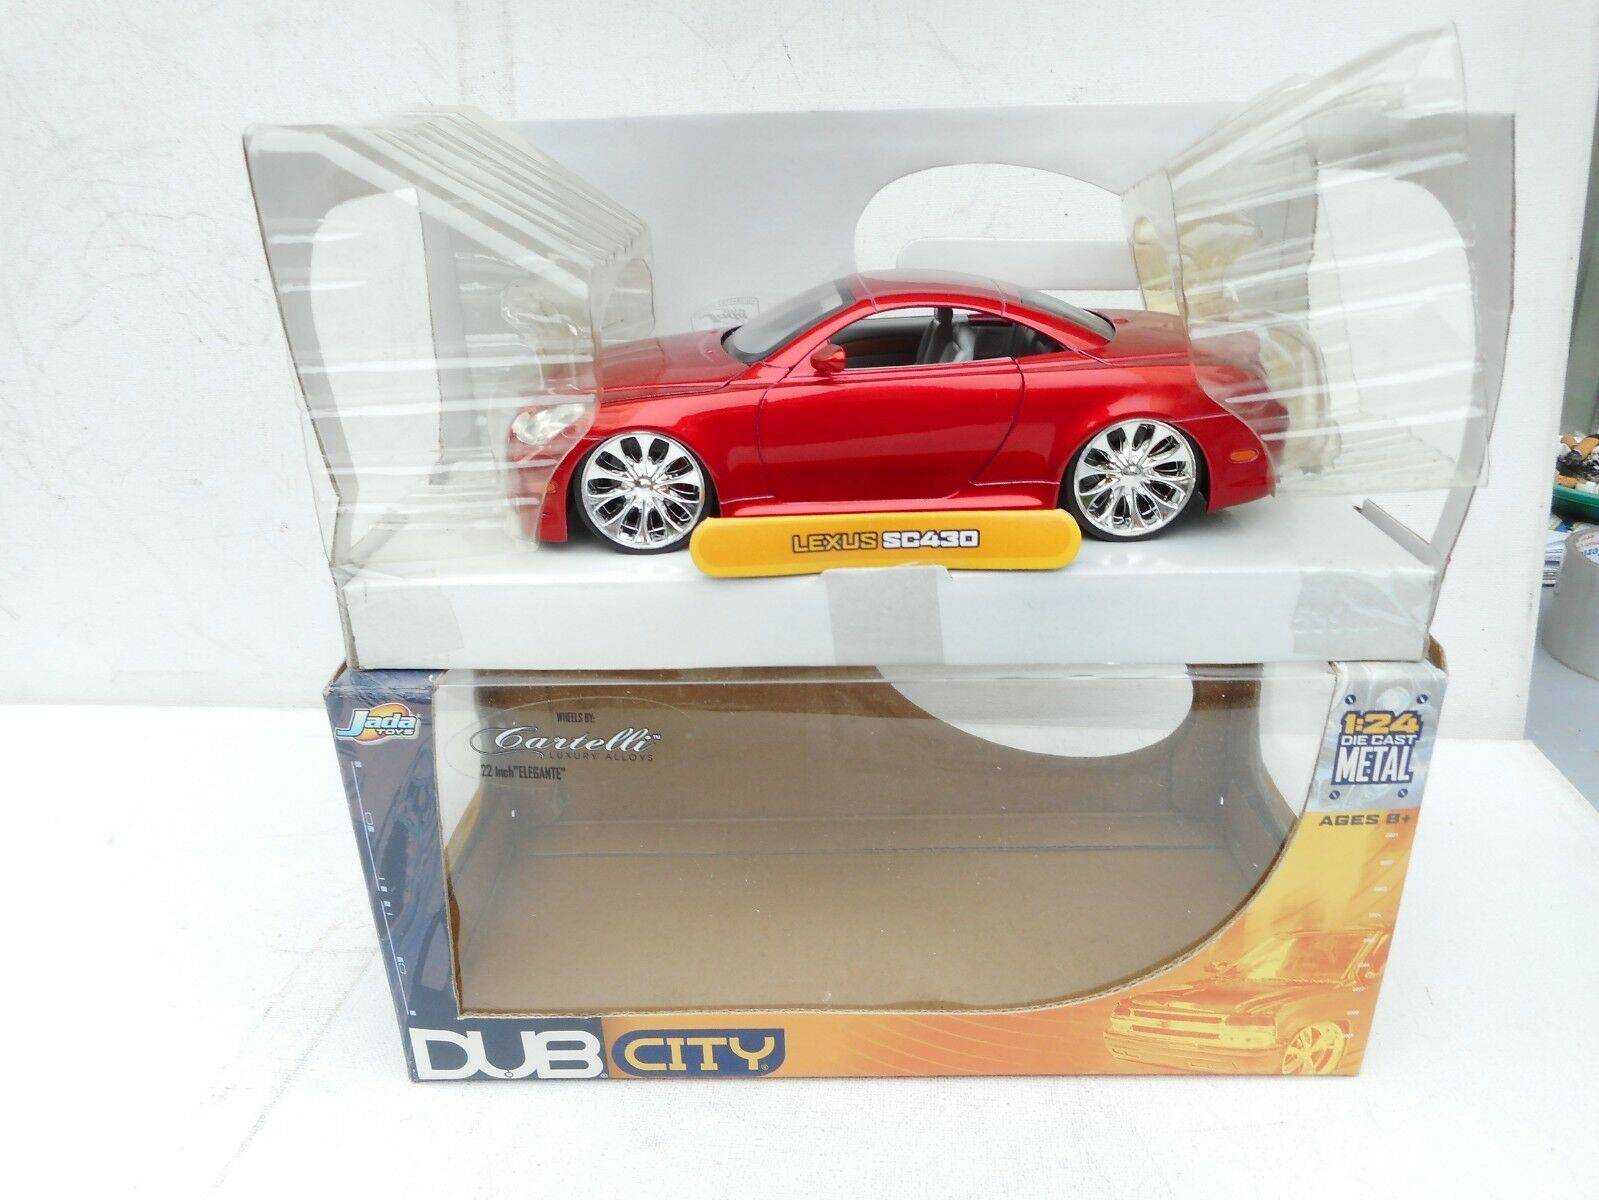 Jada TOYOTA BUB CITY LEXUS SC 430 METALLIC METALLIC METALLIC RED IN BOX 1 24 Scale 09d659